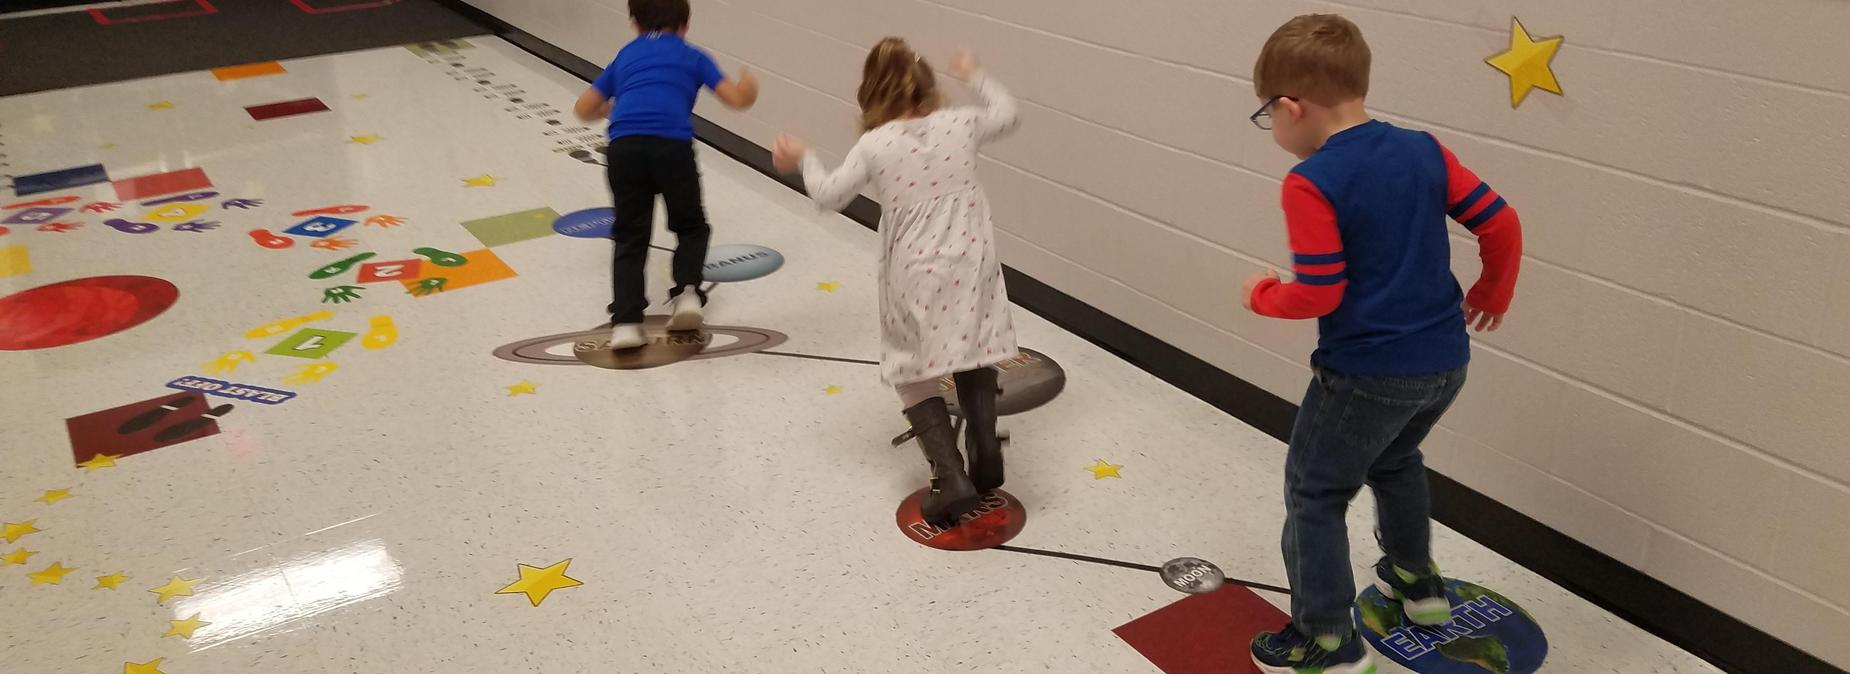 Kids jumping on solar system mats